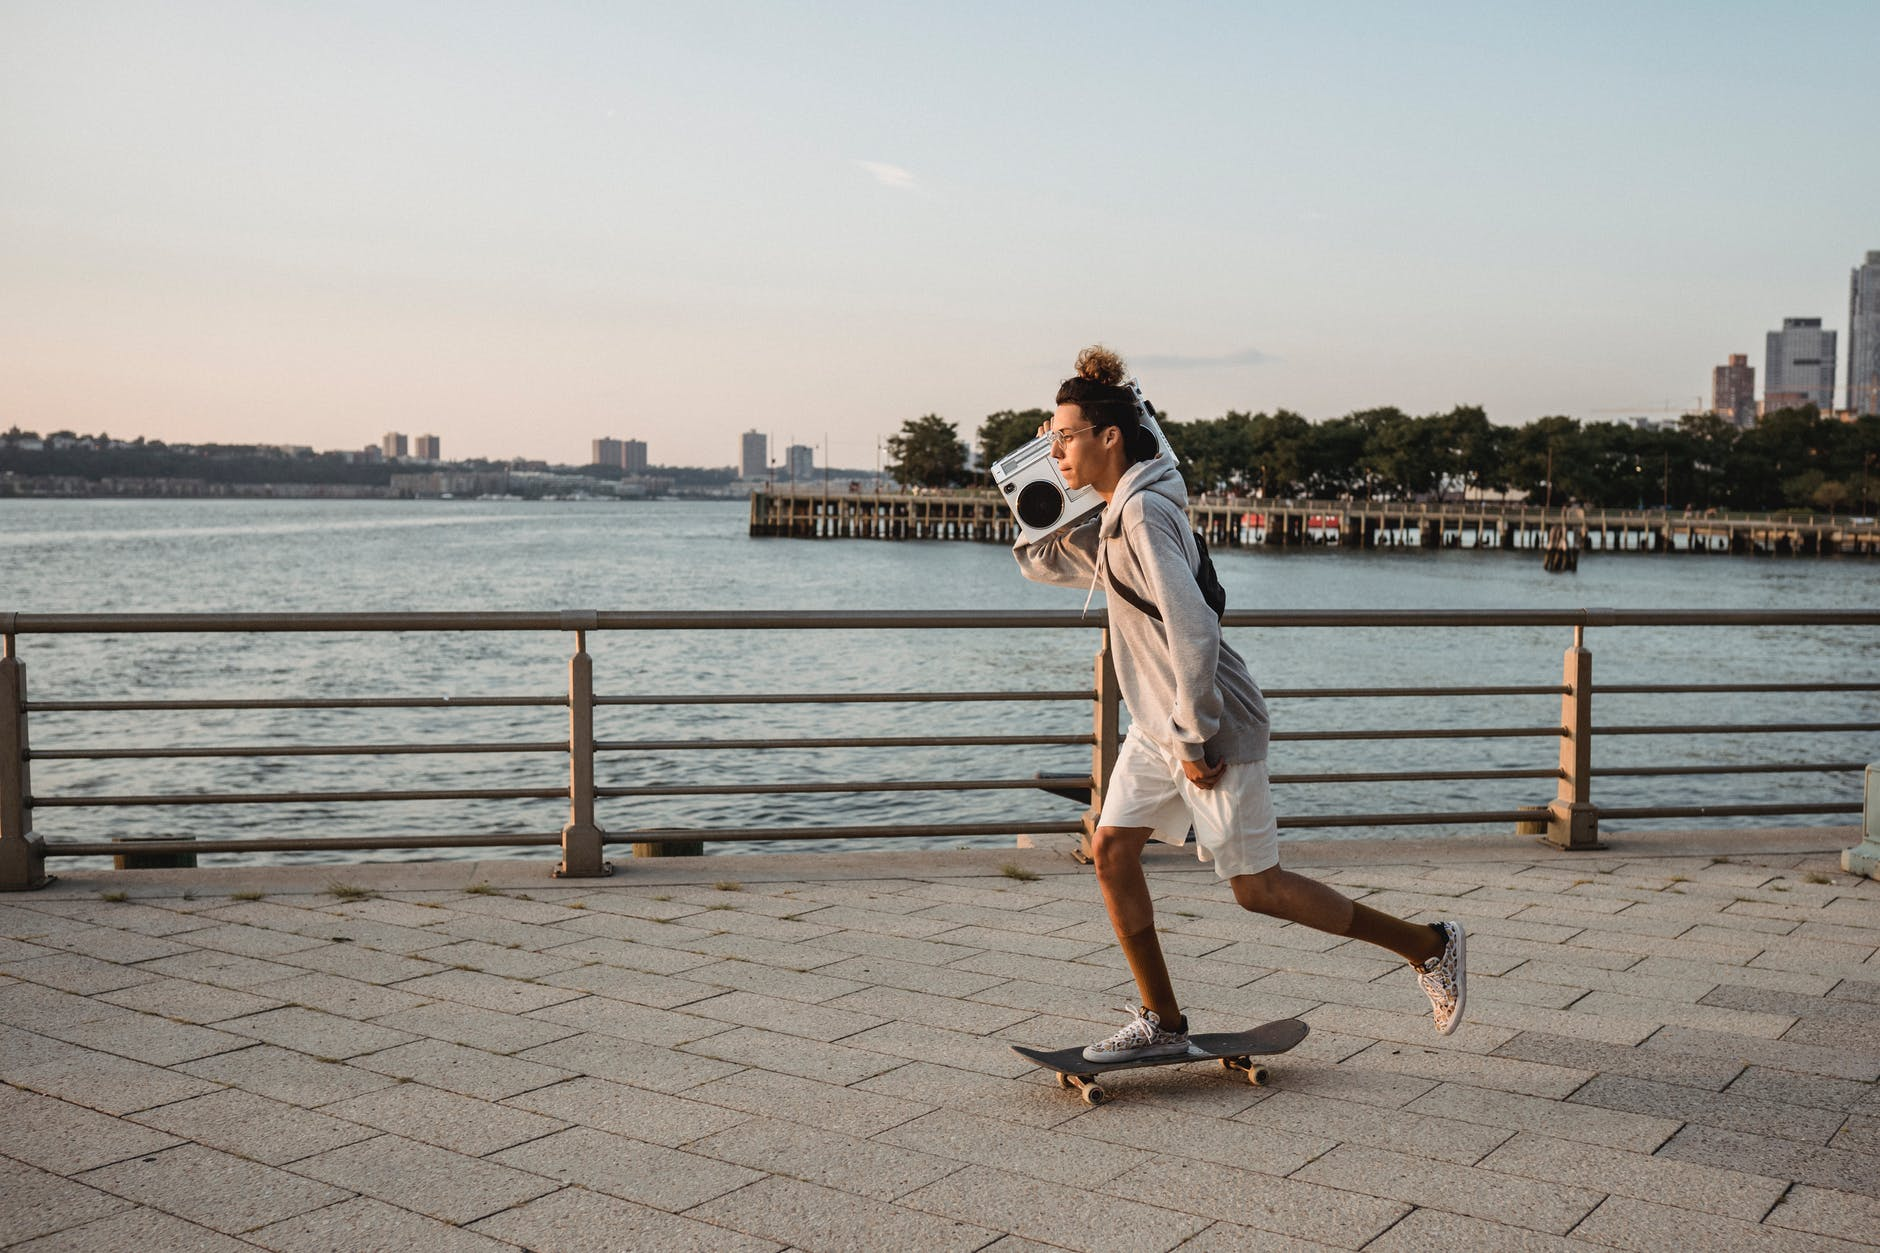 skilled male skater riding skateboard with boombox on embankment